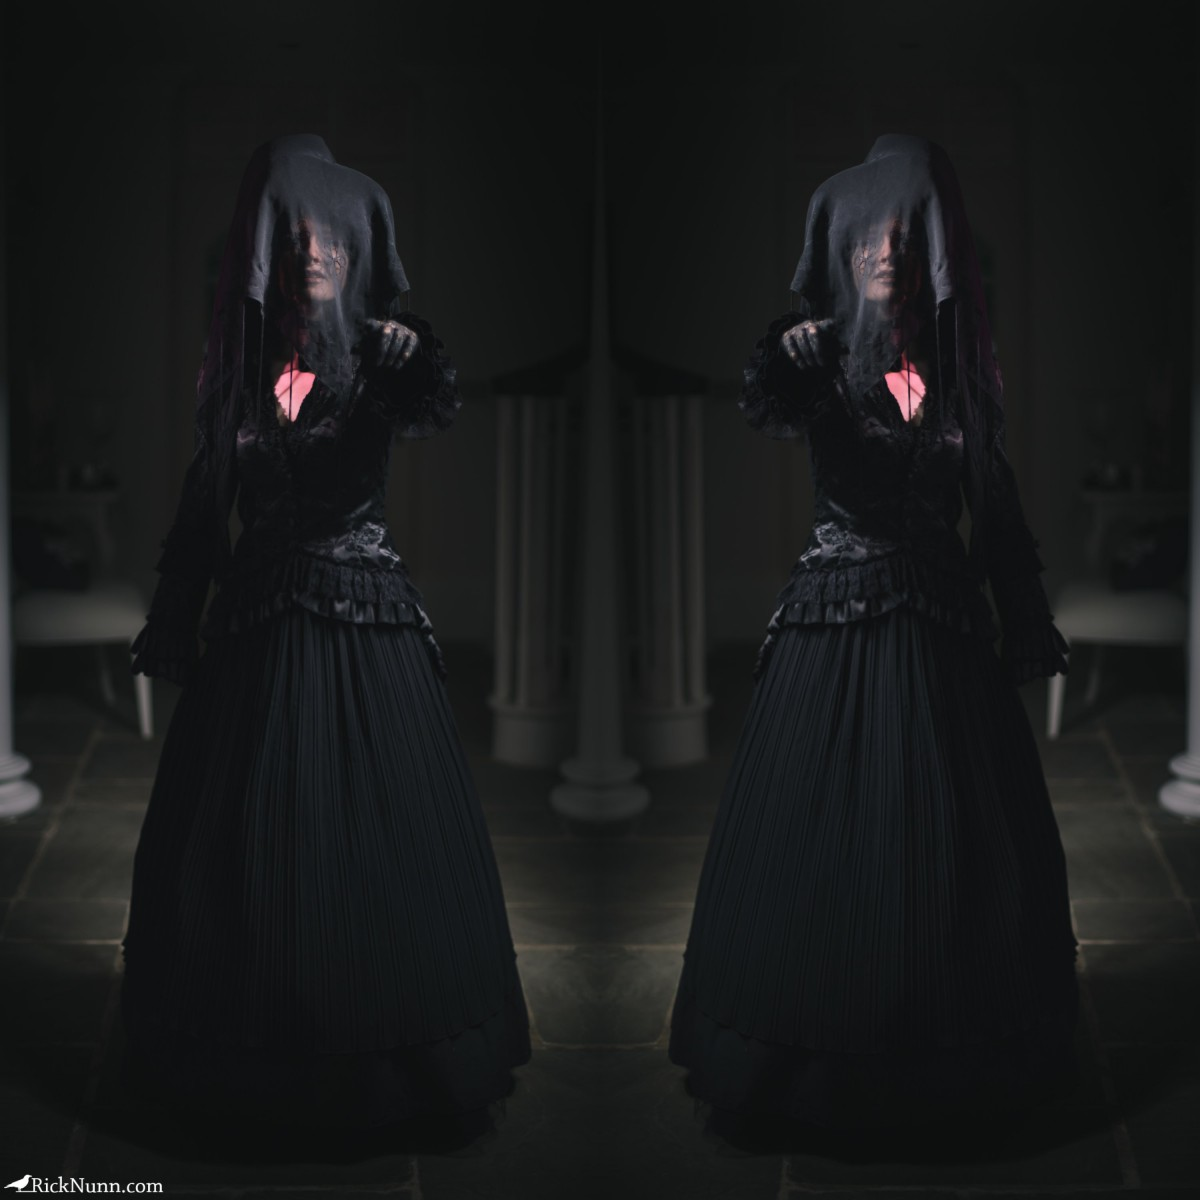 The Woman In Black – A 5 Minute Portrait - Woman In Black - 1 Photographed by Rick Nunn